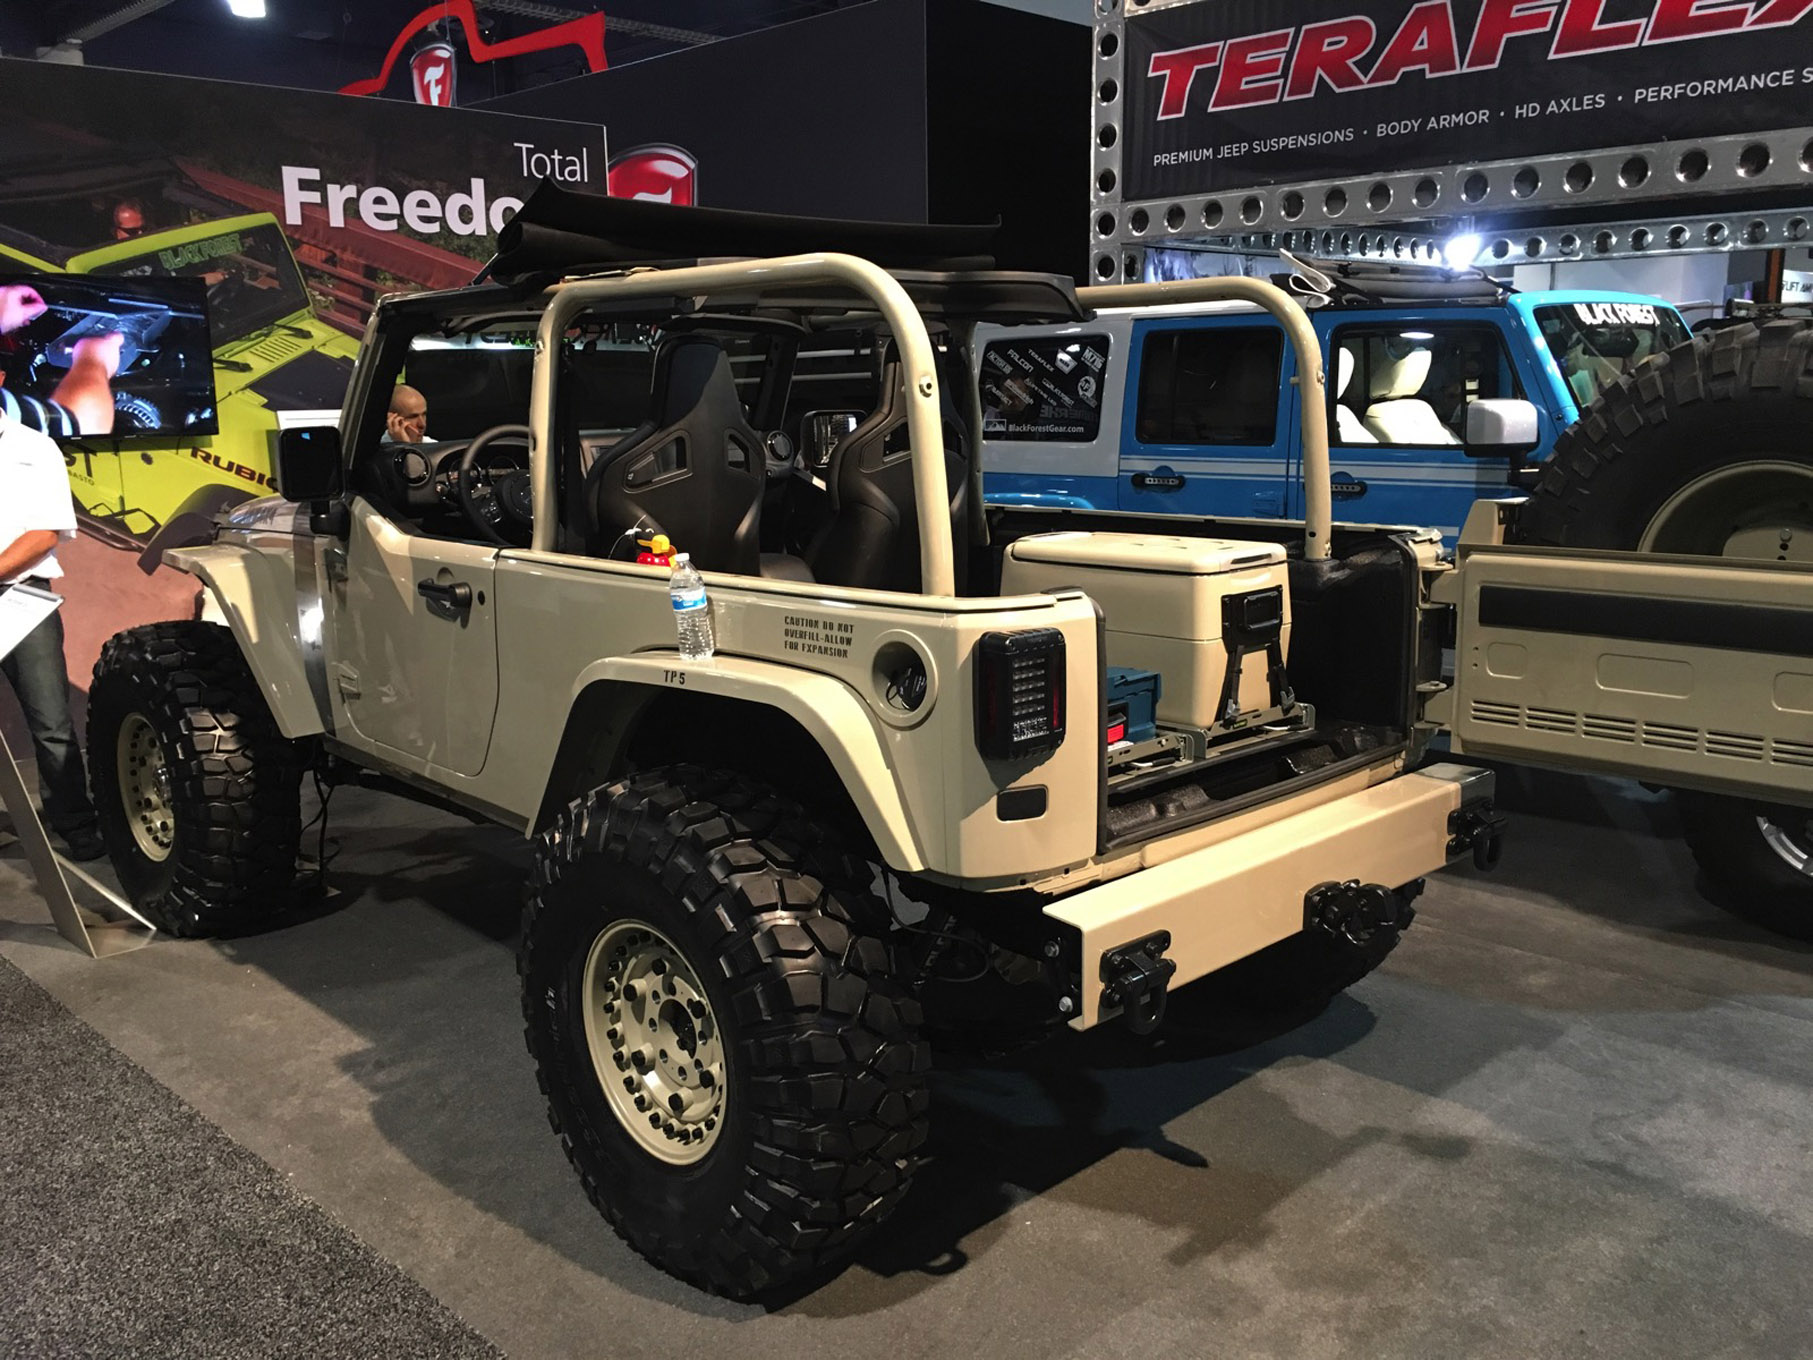 013 sema 2017 day 1 south upper hall gallery photos